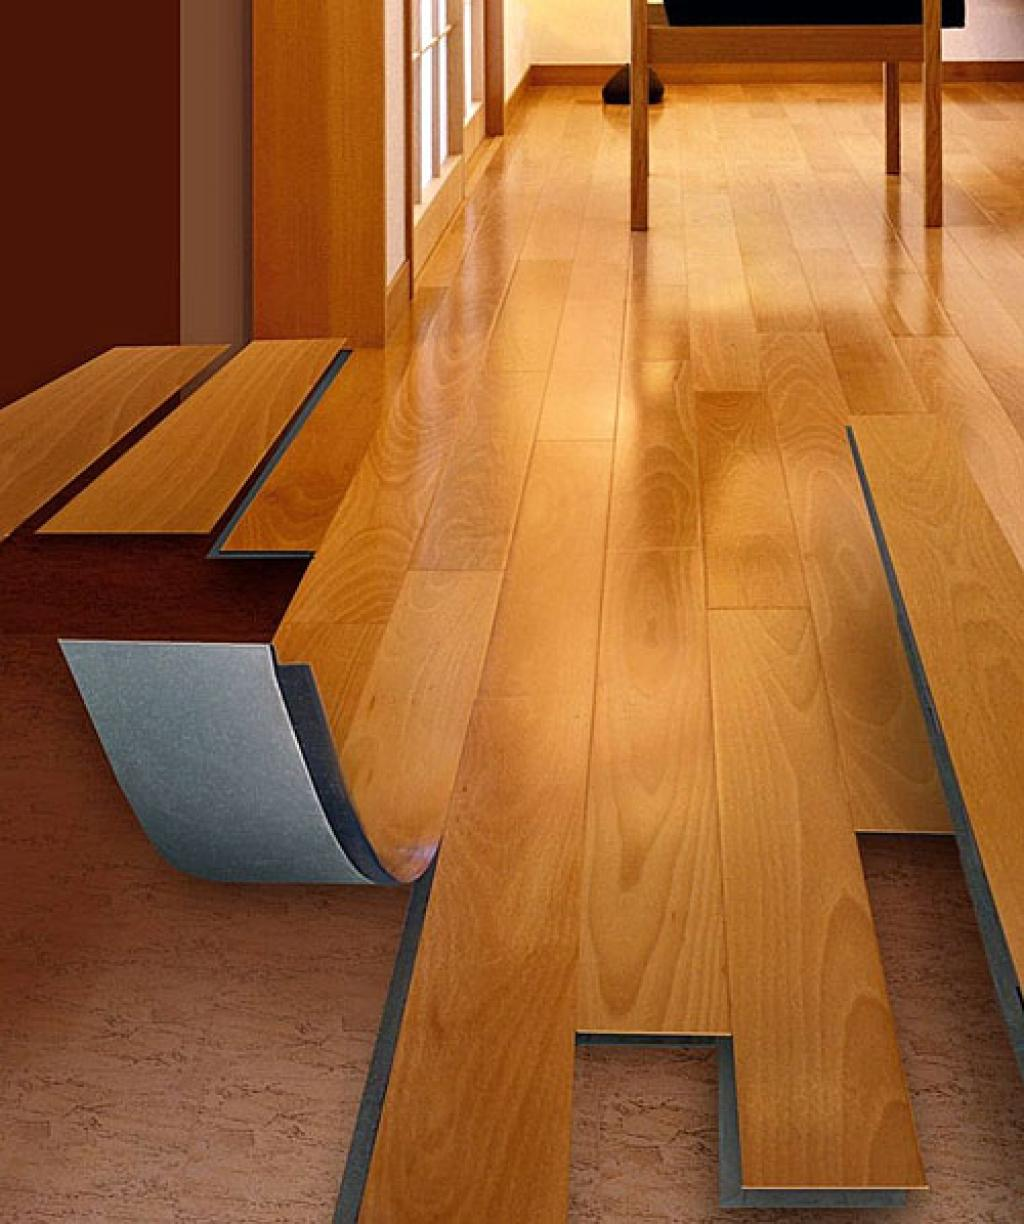 Pvc Flooring Planks : Allure flooring installation guideline